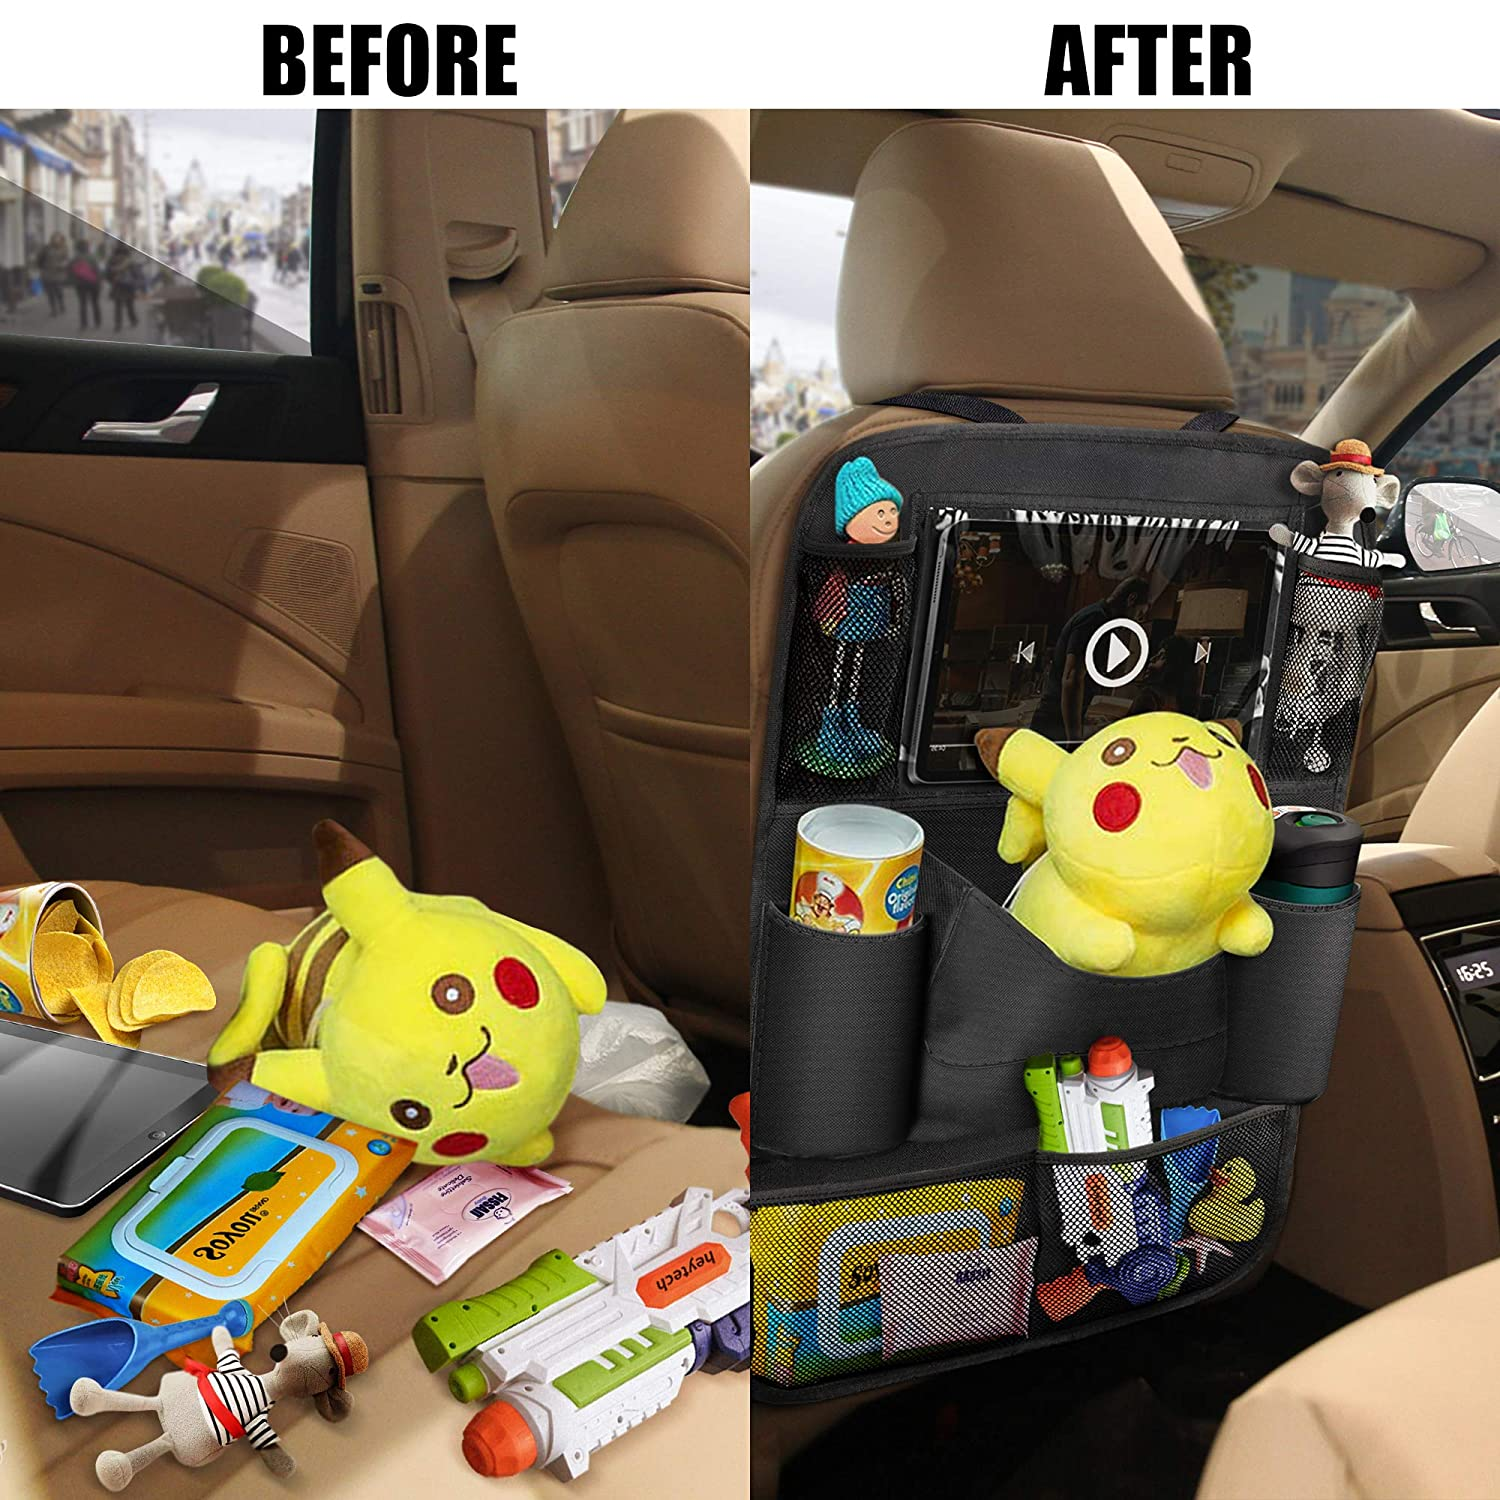 Kick Mats Car Back Seat Protector with Touch Screen Tablet Holder Tissue Box 8 Storage Pockets for Toys Book Bottle Drinks Kids Baby Toddler Travel Accessories 2 Pack OYRGCIK Backseat Car Organizer